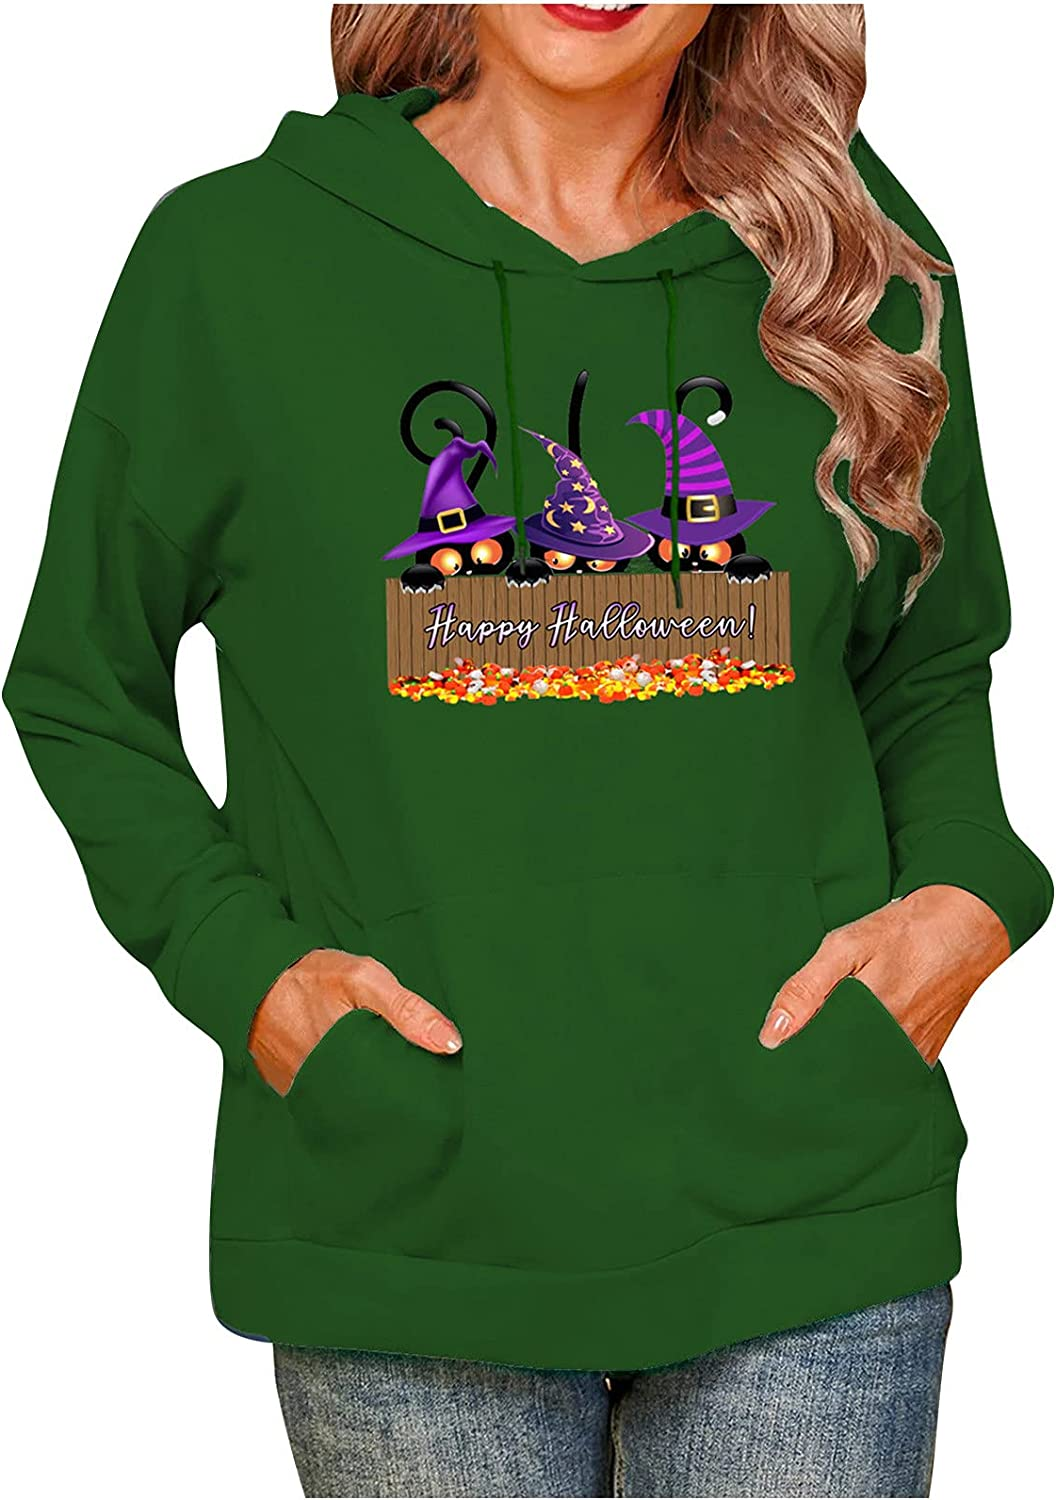 Women Some reservation Casual Hoodie Super-cheap Funny Printed Sleev Pullover Sweatshirt Long